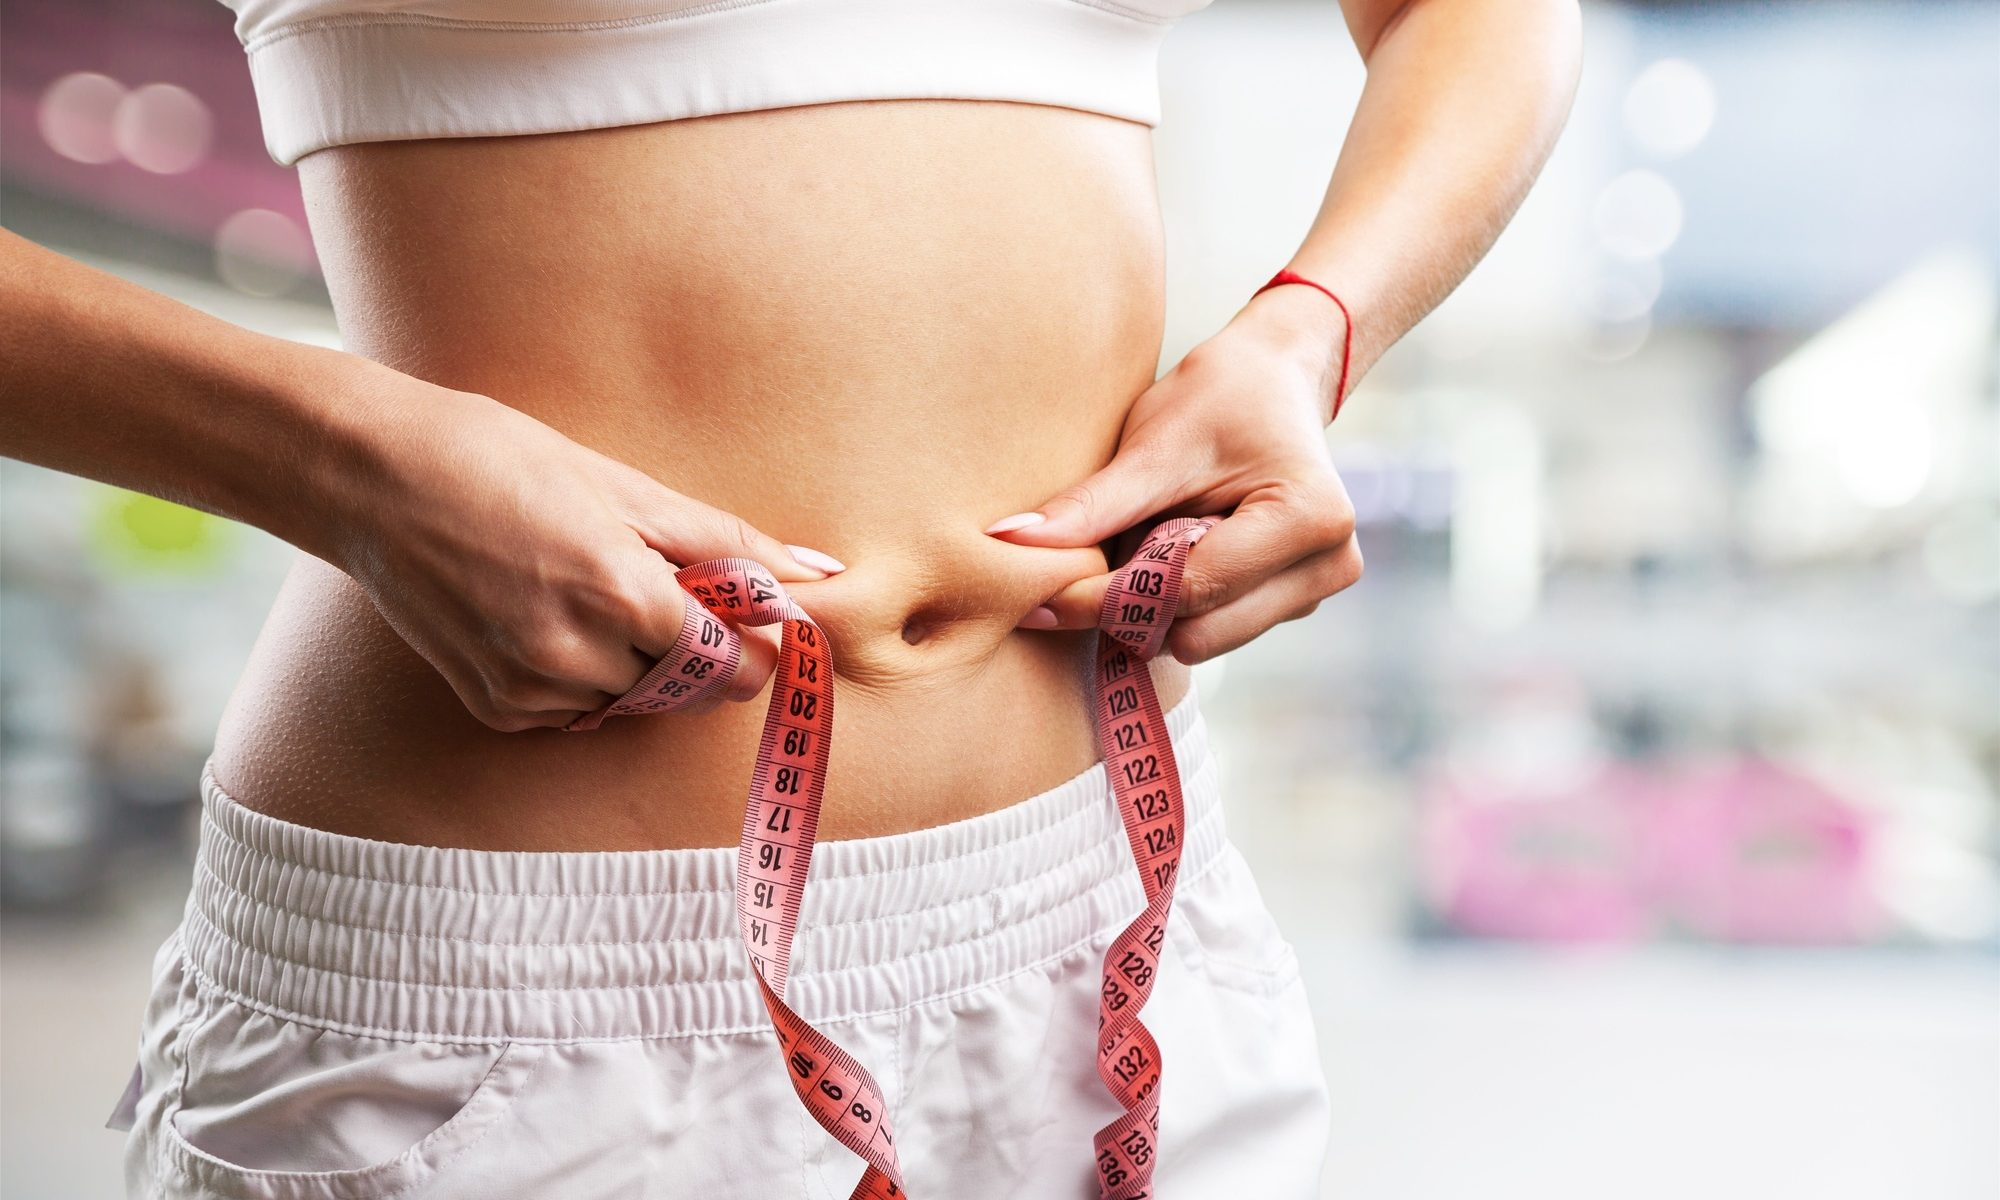 HCG Injections: How They Work to Promote Weight Loss